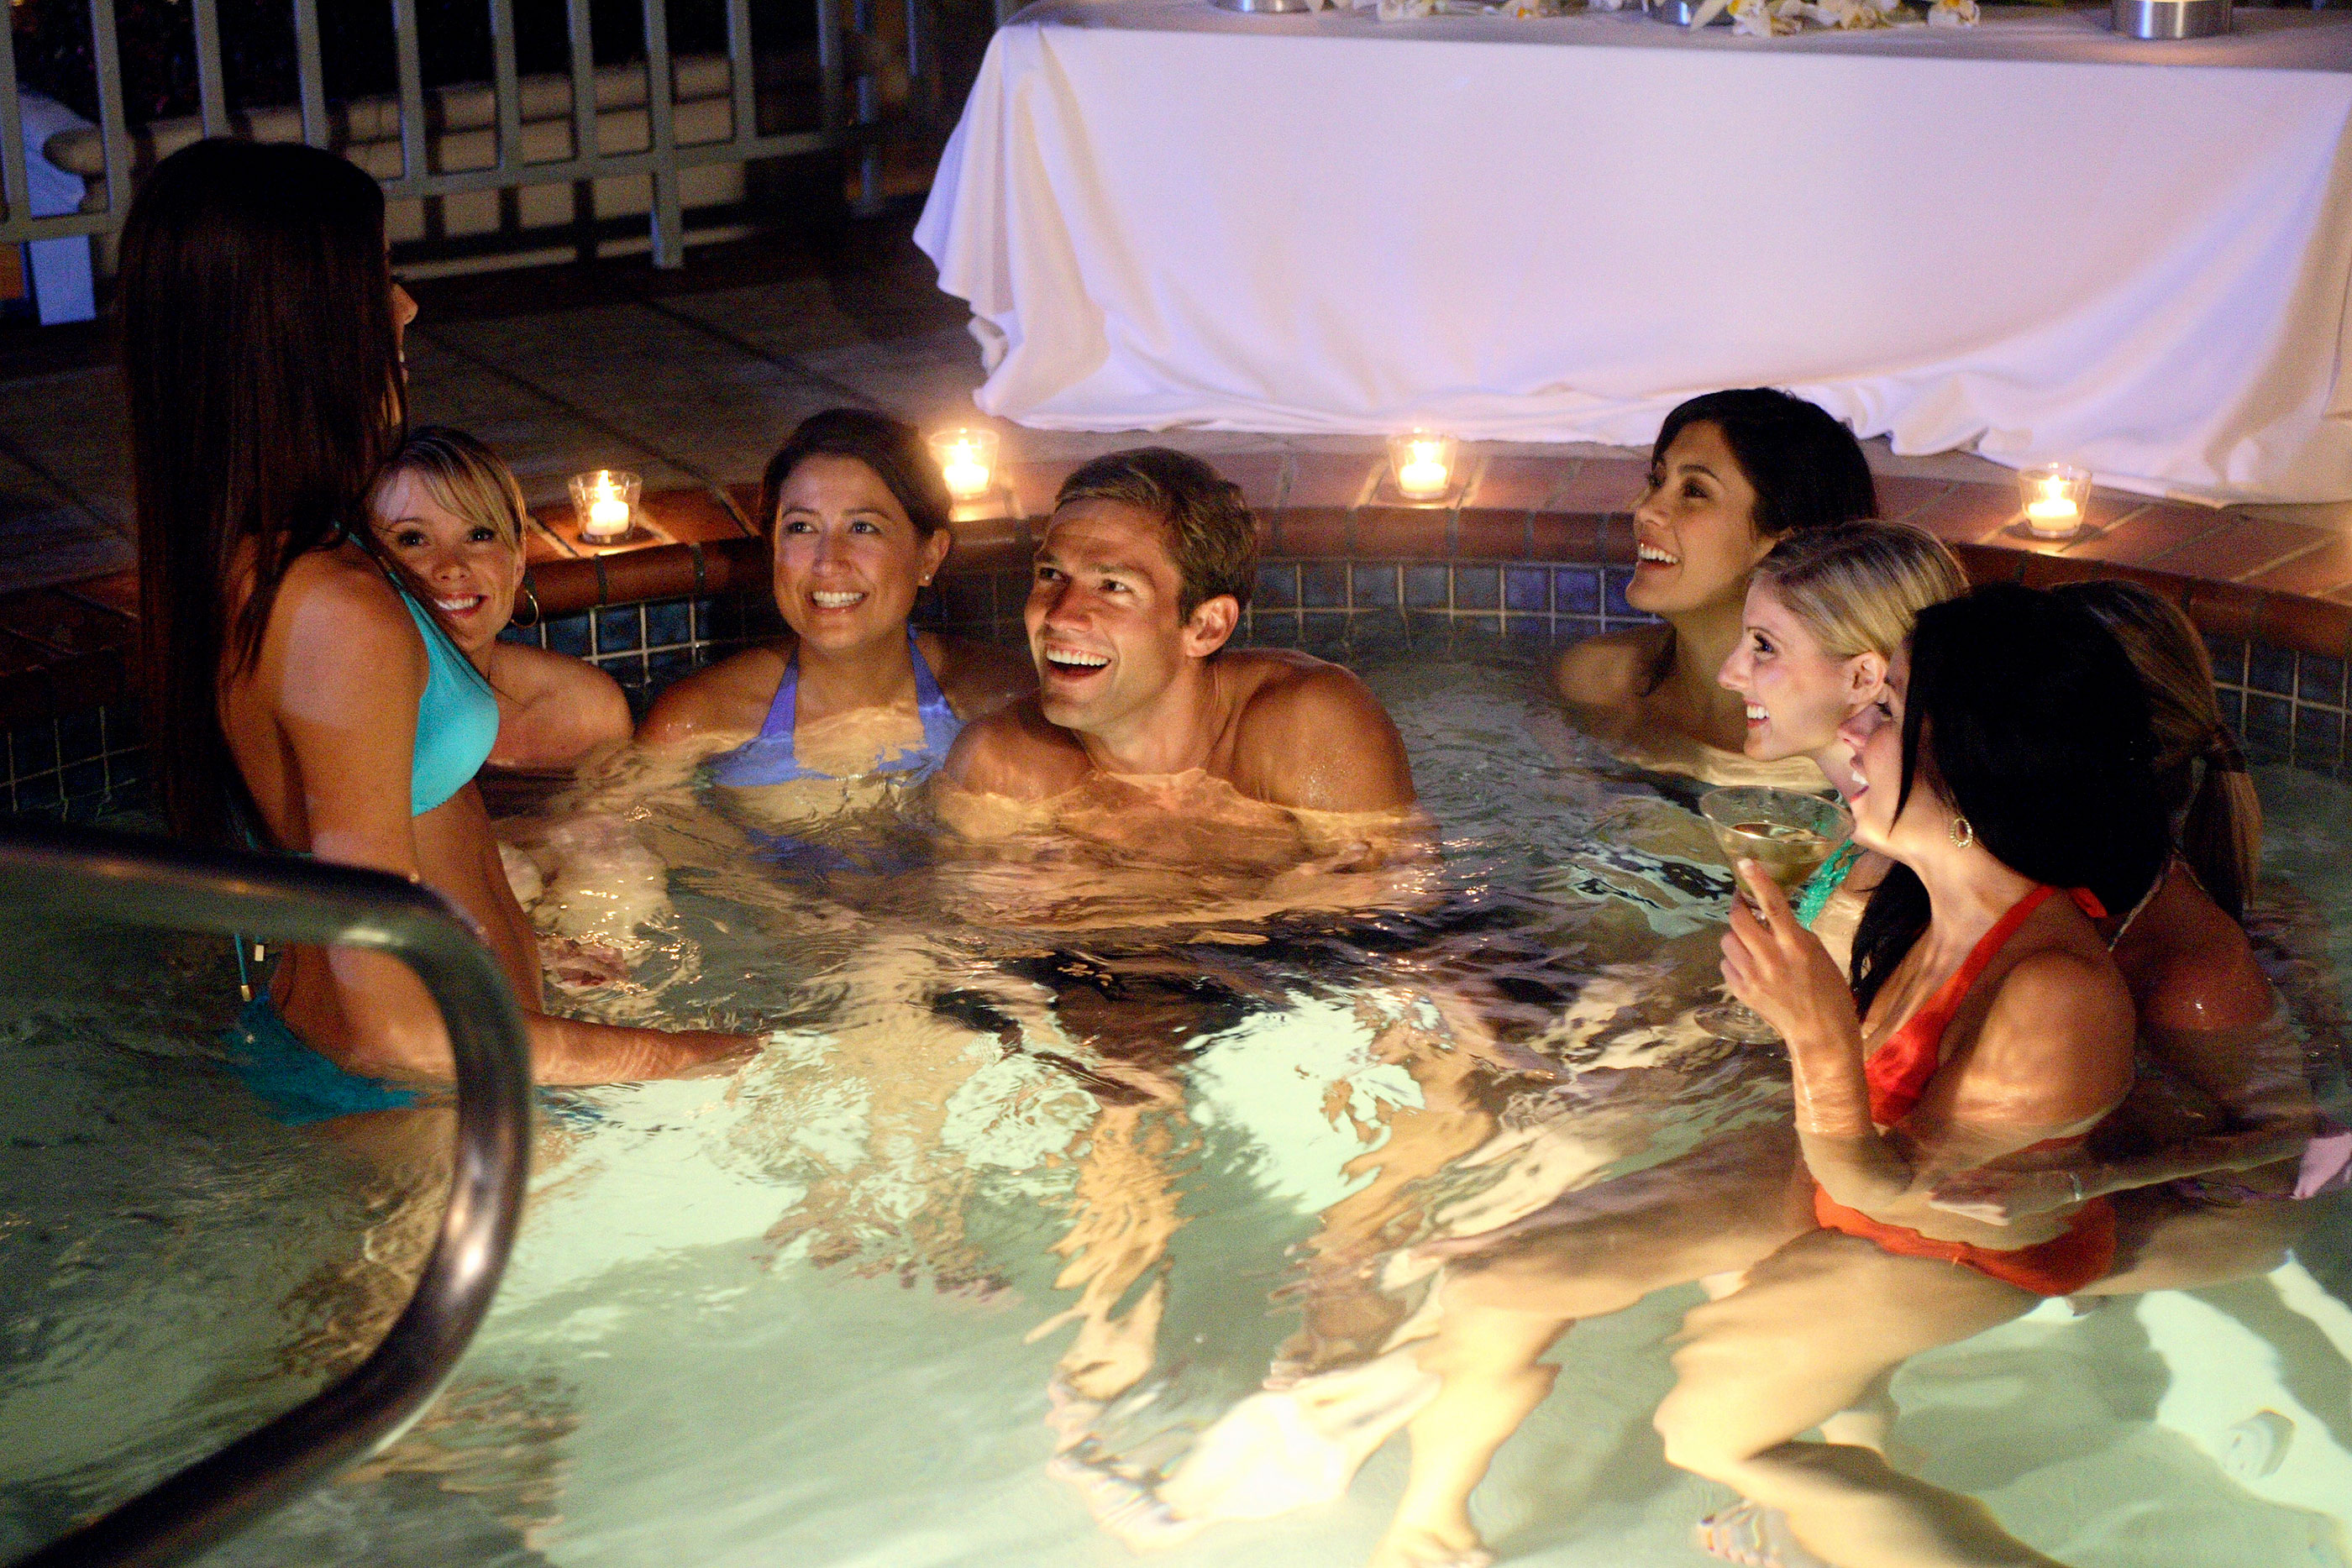 "THE BACHELOR: OFFICER AND A GENTLEMAN - ""Episode 1002"" - As 15 bachelorettes settle into a mansion in the Hollywood Hills, the fairy tale begins. On his first group date, Andy and seven striking ladies take the Sunset Strip by storm with an evening of cocktails and bull riding that ends in the hot tub. Bevin can't handle the competition, becoming irritated, and seethes over perceived slights. Then one lucky bachelorette is singled out to spend a romantic evening aboard the Bachelor's private yacht, on ""The Bachelor: Officer and a Gentleman,"" MONDAY, APRIL 9 (9:30-11:00 p.m., ET), on the ABC Television Network."